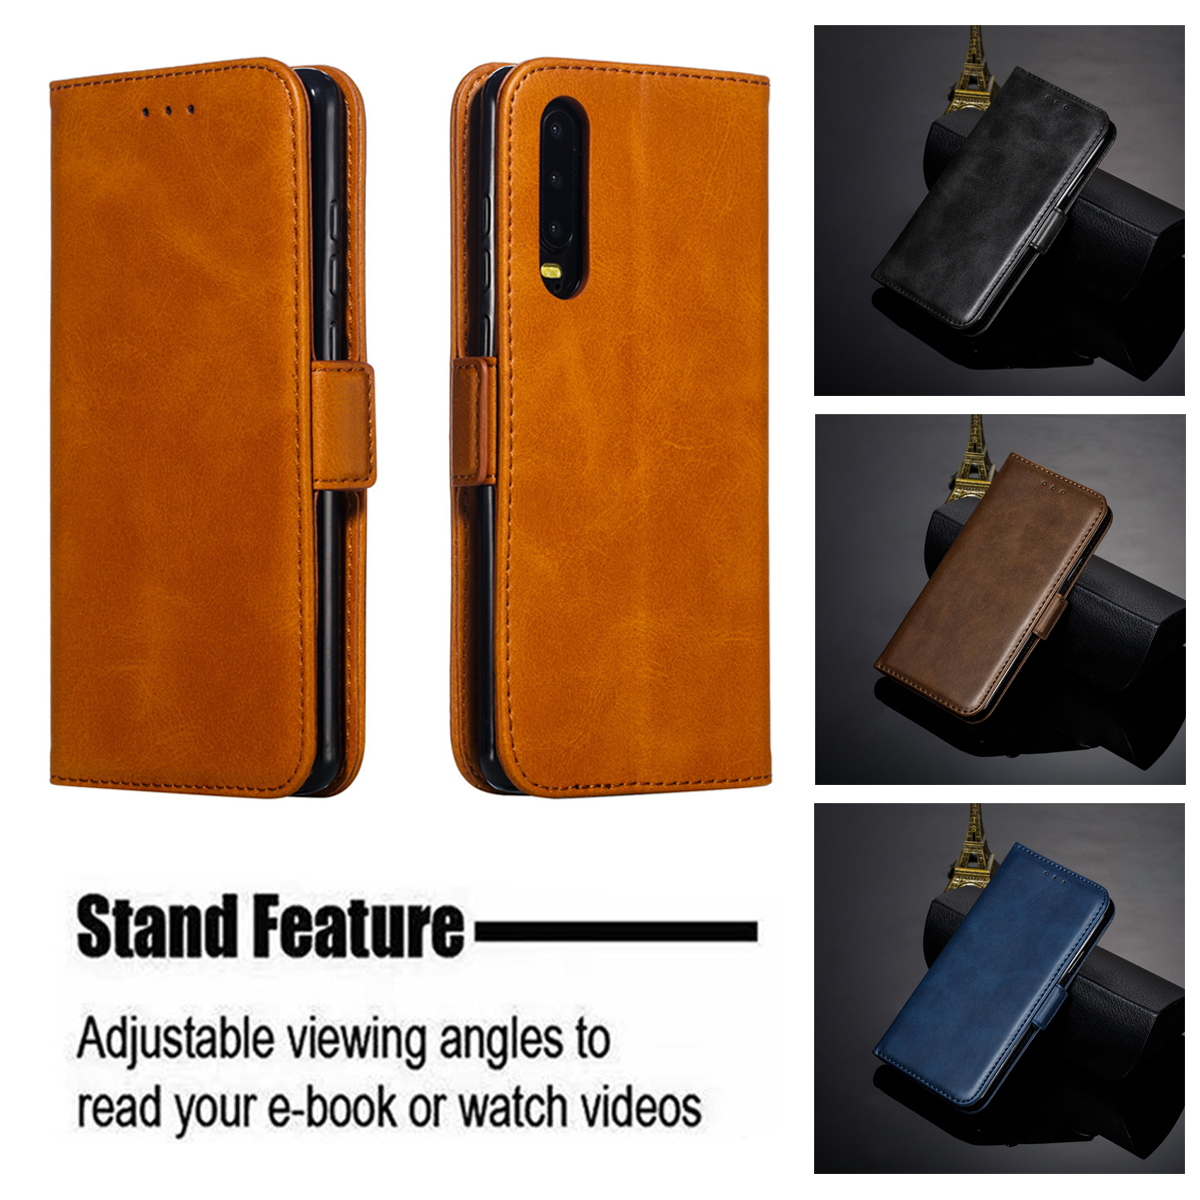 Flip Cover 360 Case for Huawei P20 P30 P10 Lite Luxury Solid Color Leather for Huawei Mate 20 10 Pro Lite Retro Card Slot Wallet